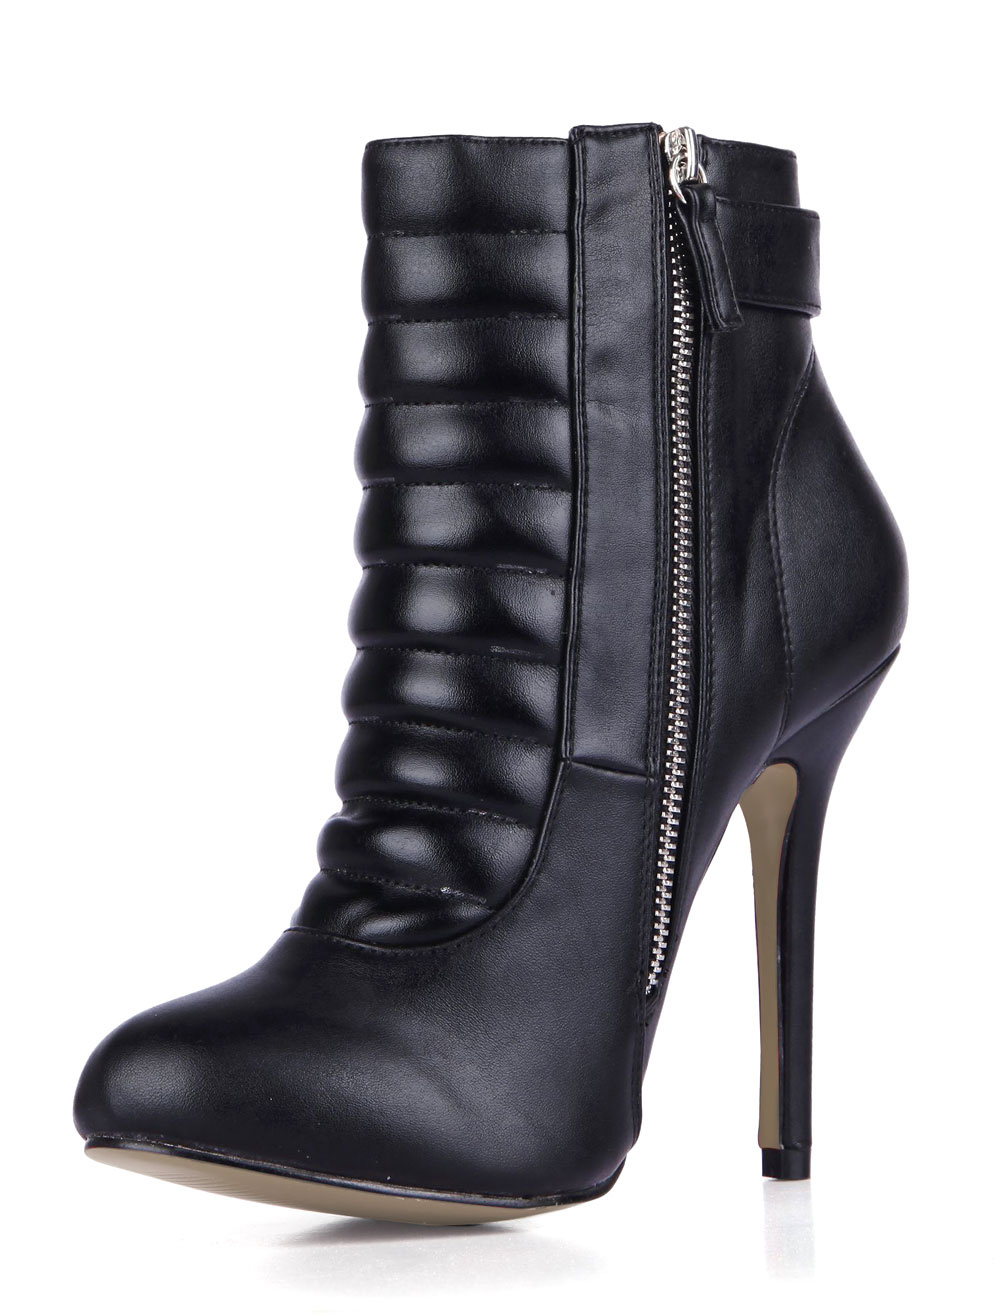 PU Leather Zipper Buckled Booties